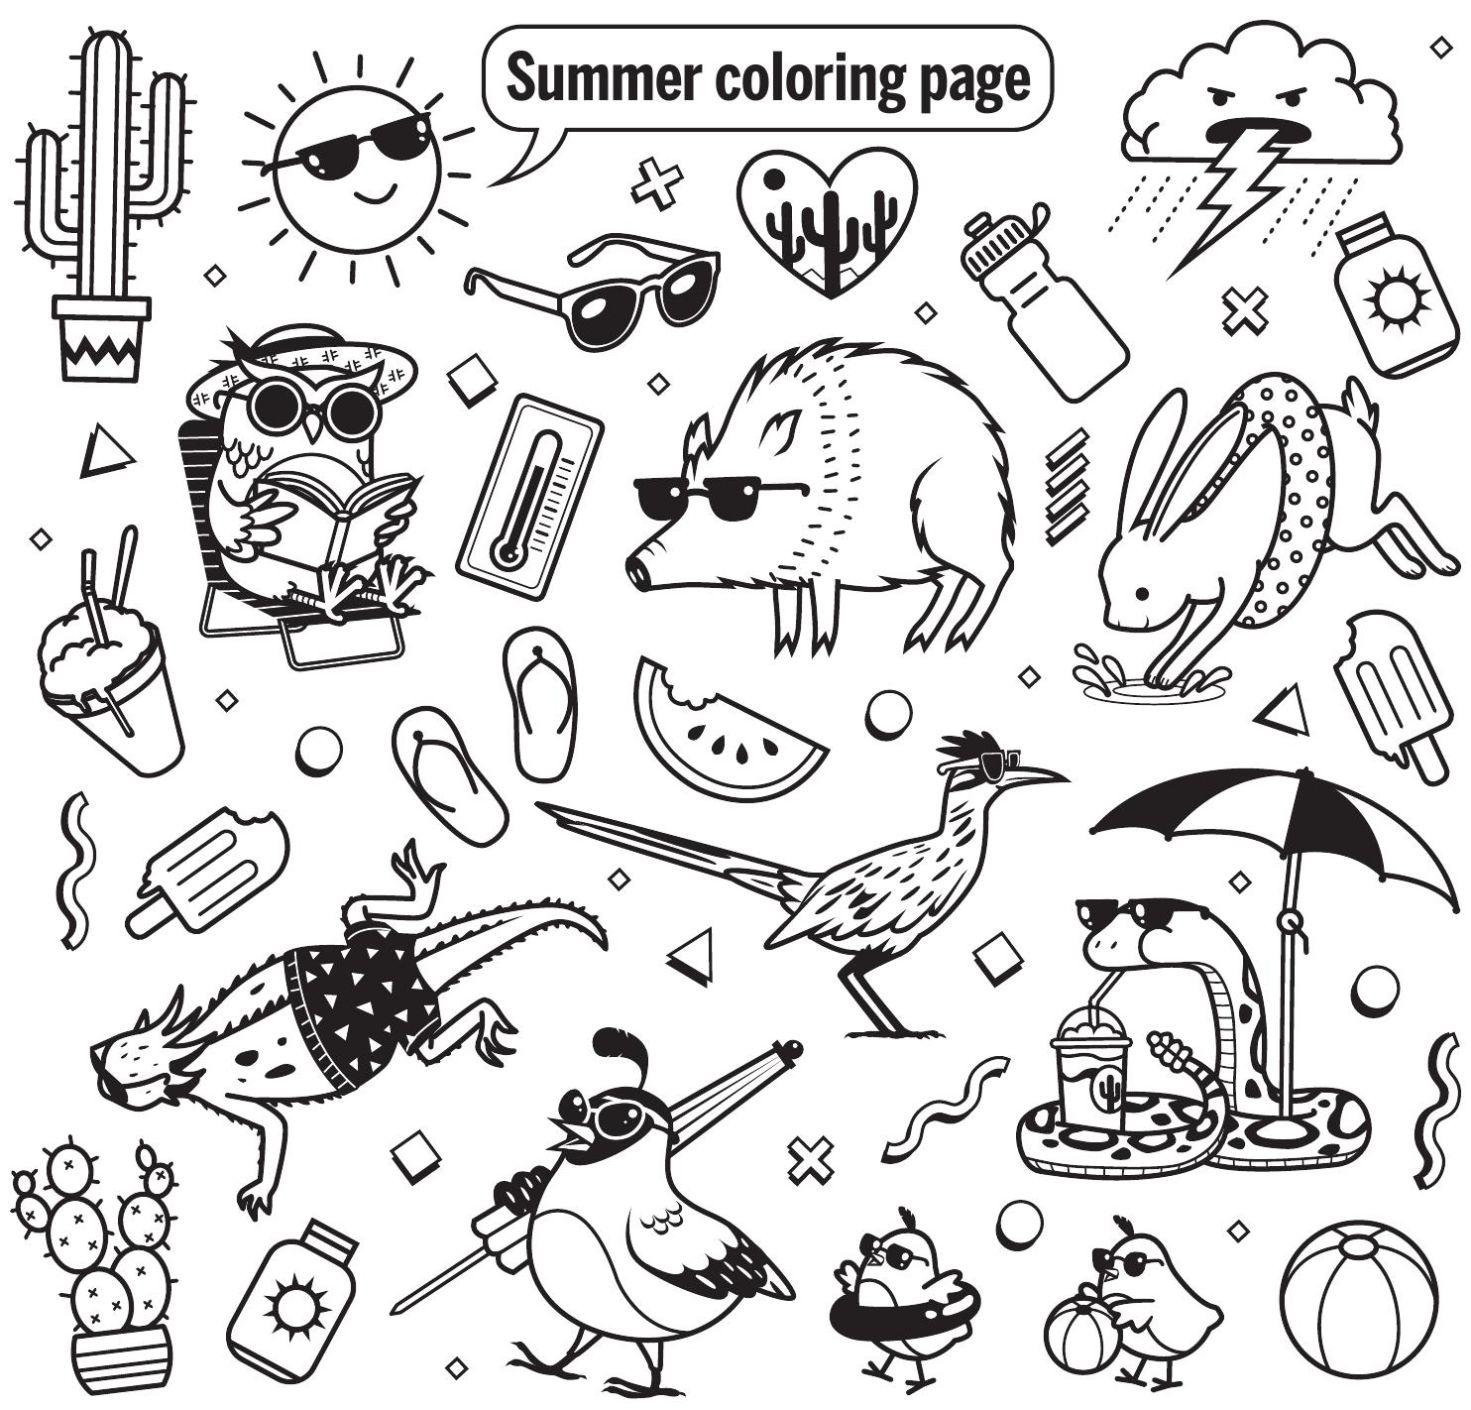 Print Out These 12 Totally Adorable Tucson-themed Coloring Pages